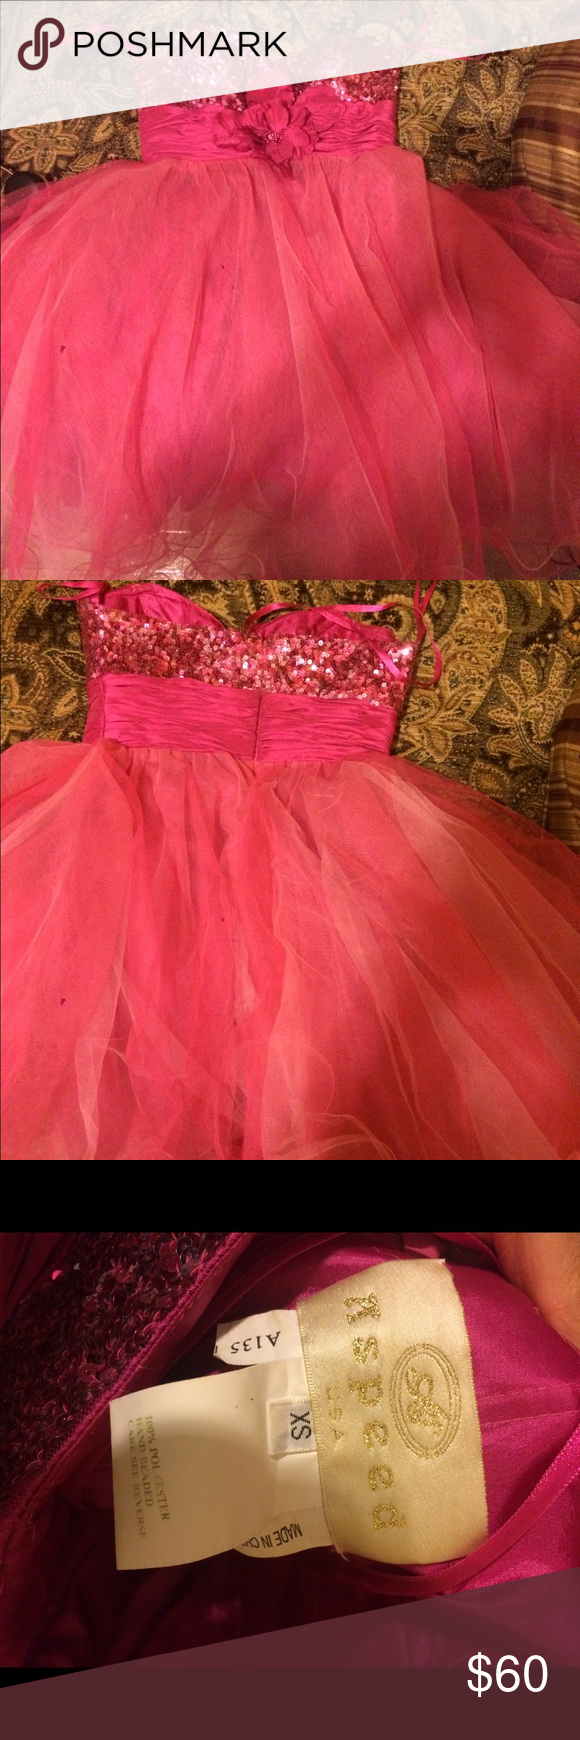 Short pink sequin chiffon dress sequined bust with a flower in the